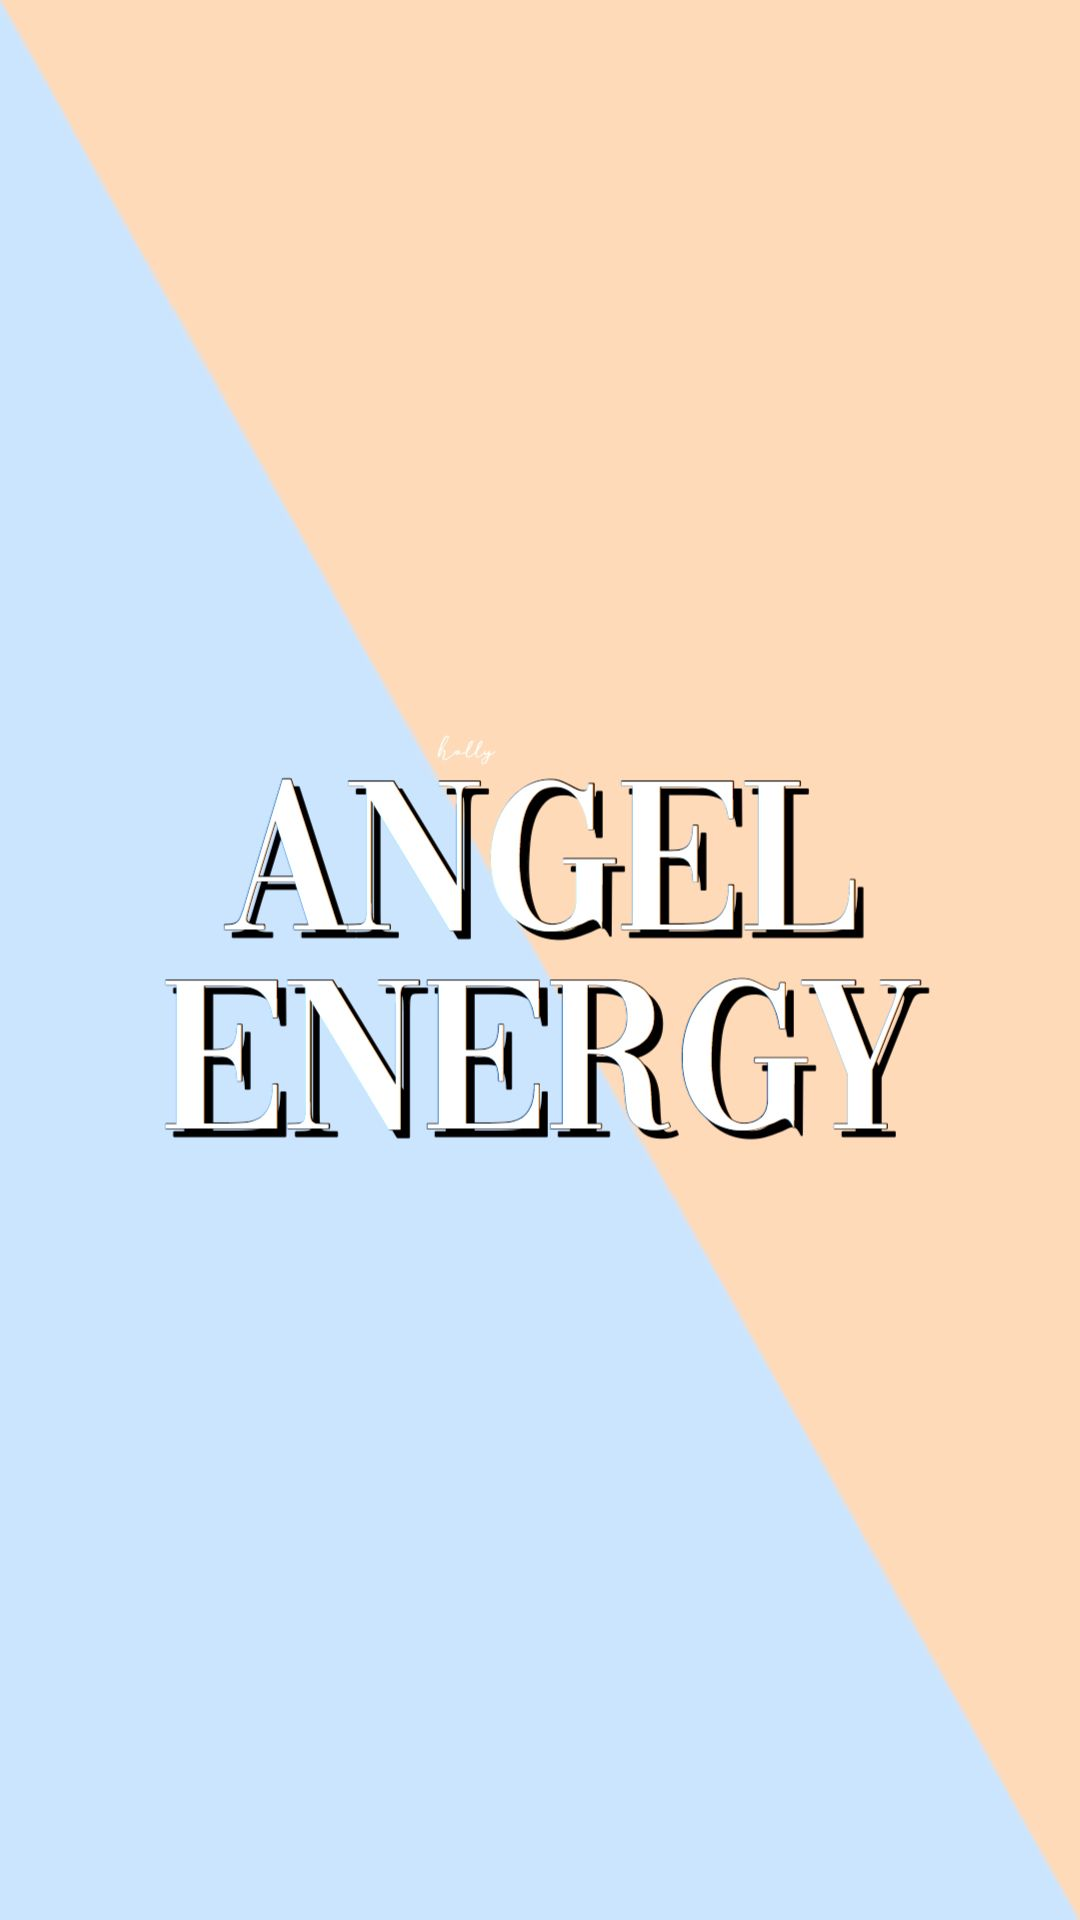 Background Angel Energy Wall Collage Cool Wallpaper Aesthetic Wallpapers